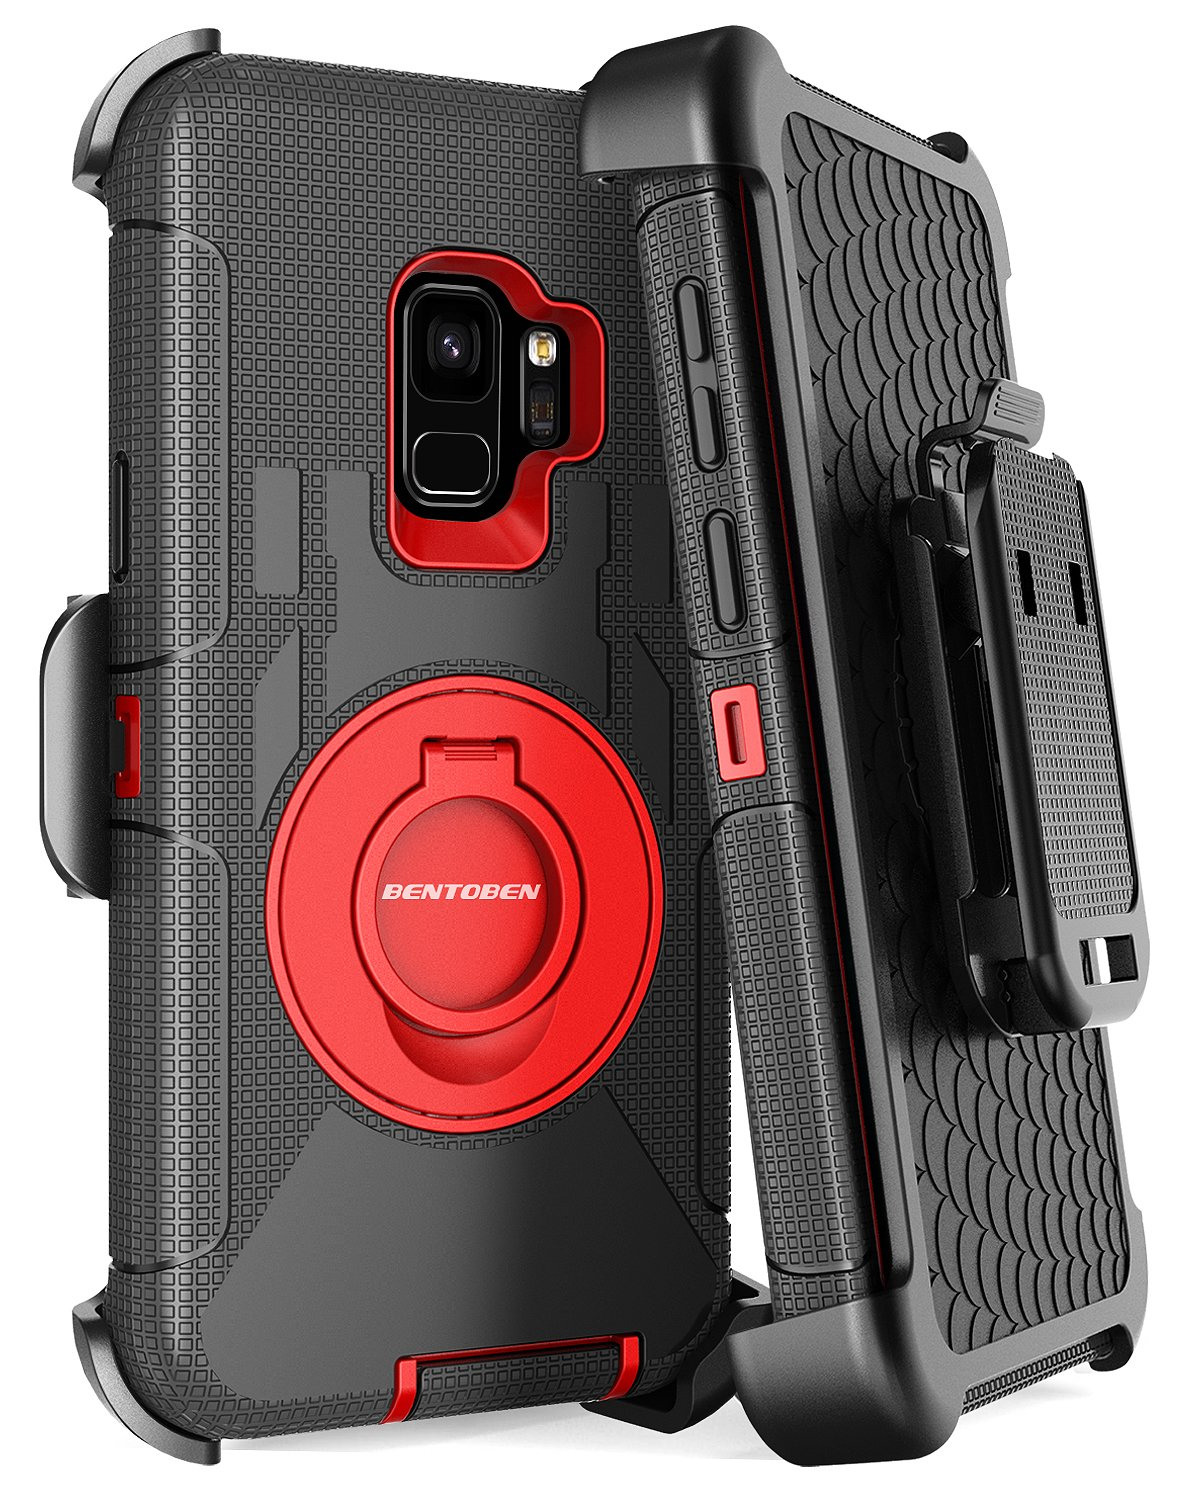 Galaxy S9 Case, Samsung Galaxy S9 Case, BENTOBEN Shockproof Heavy Duty Kickstand Swivel Belt Clip Hybrid Full Body Rugged Holster Protective Phone Case Cover for Samsung Galaxy S9 (SM-G960U),Black/Red